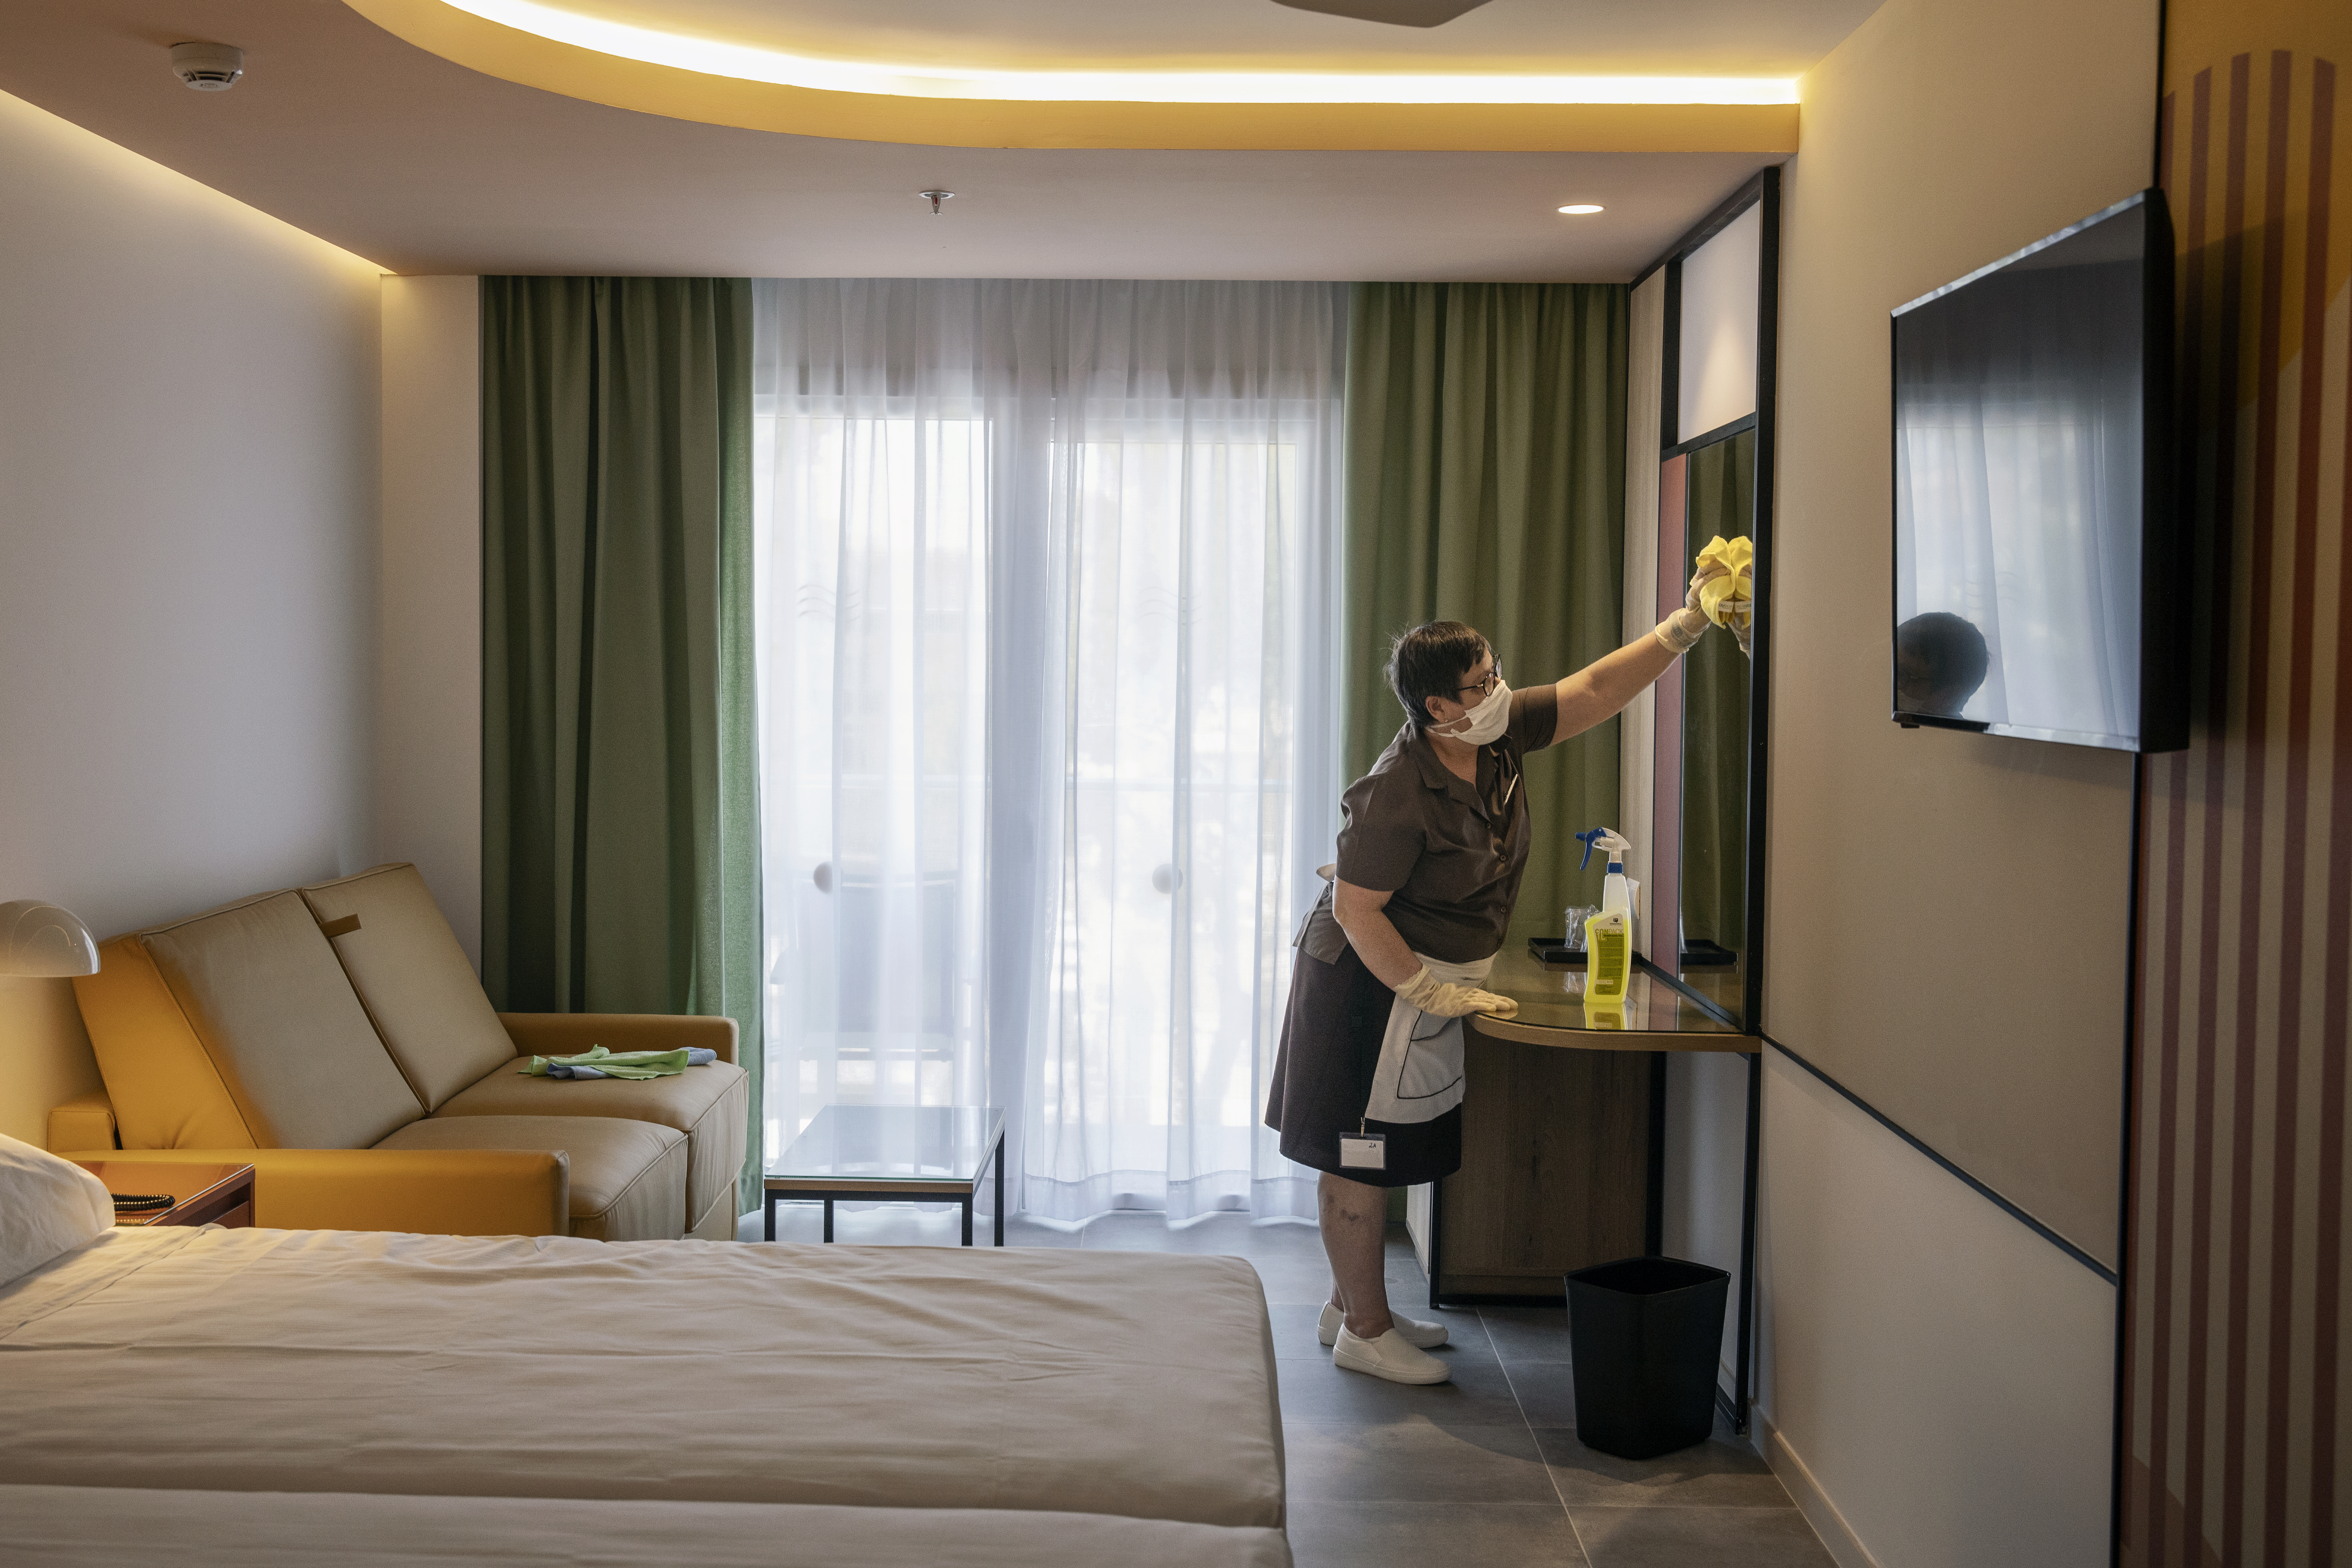 Playa de Palma, Mallorca, a member of the Riu Concordia Hotel staff at work cleaning and disinfecting a room on June 16, 2020.